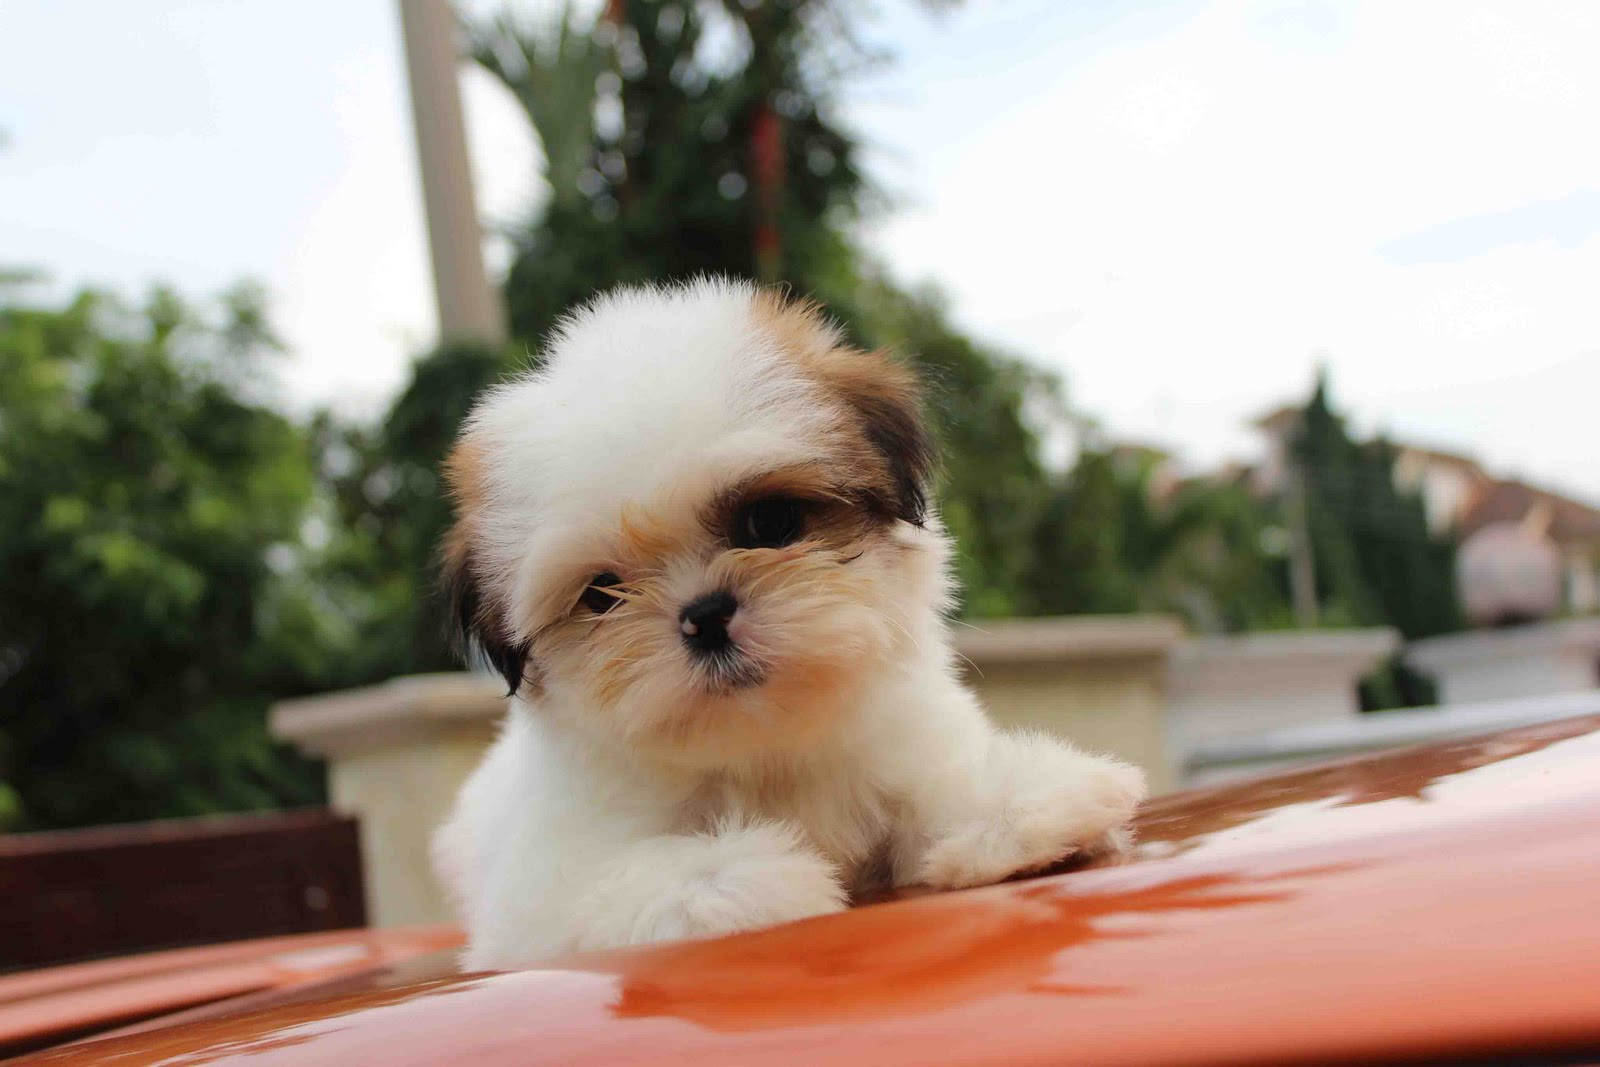 Genoeg LovelyPuppy: Mini Shih Tzu Puppies For Sales @ RM499 ONLY!!! #CC71